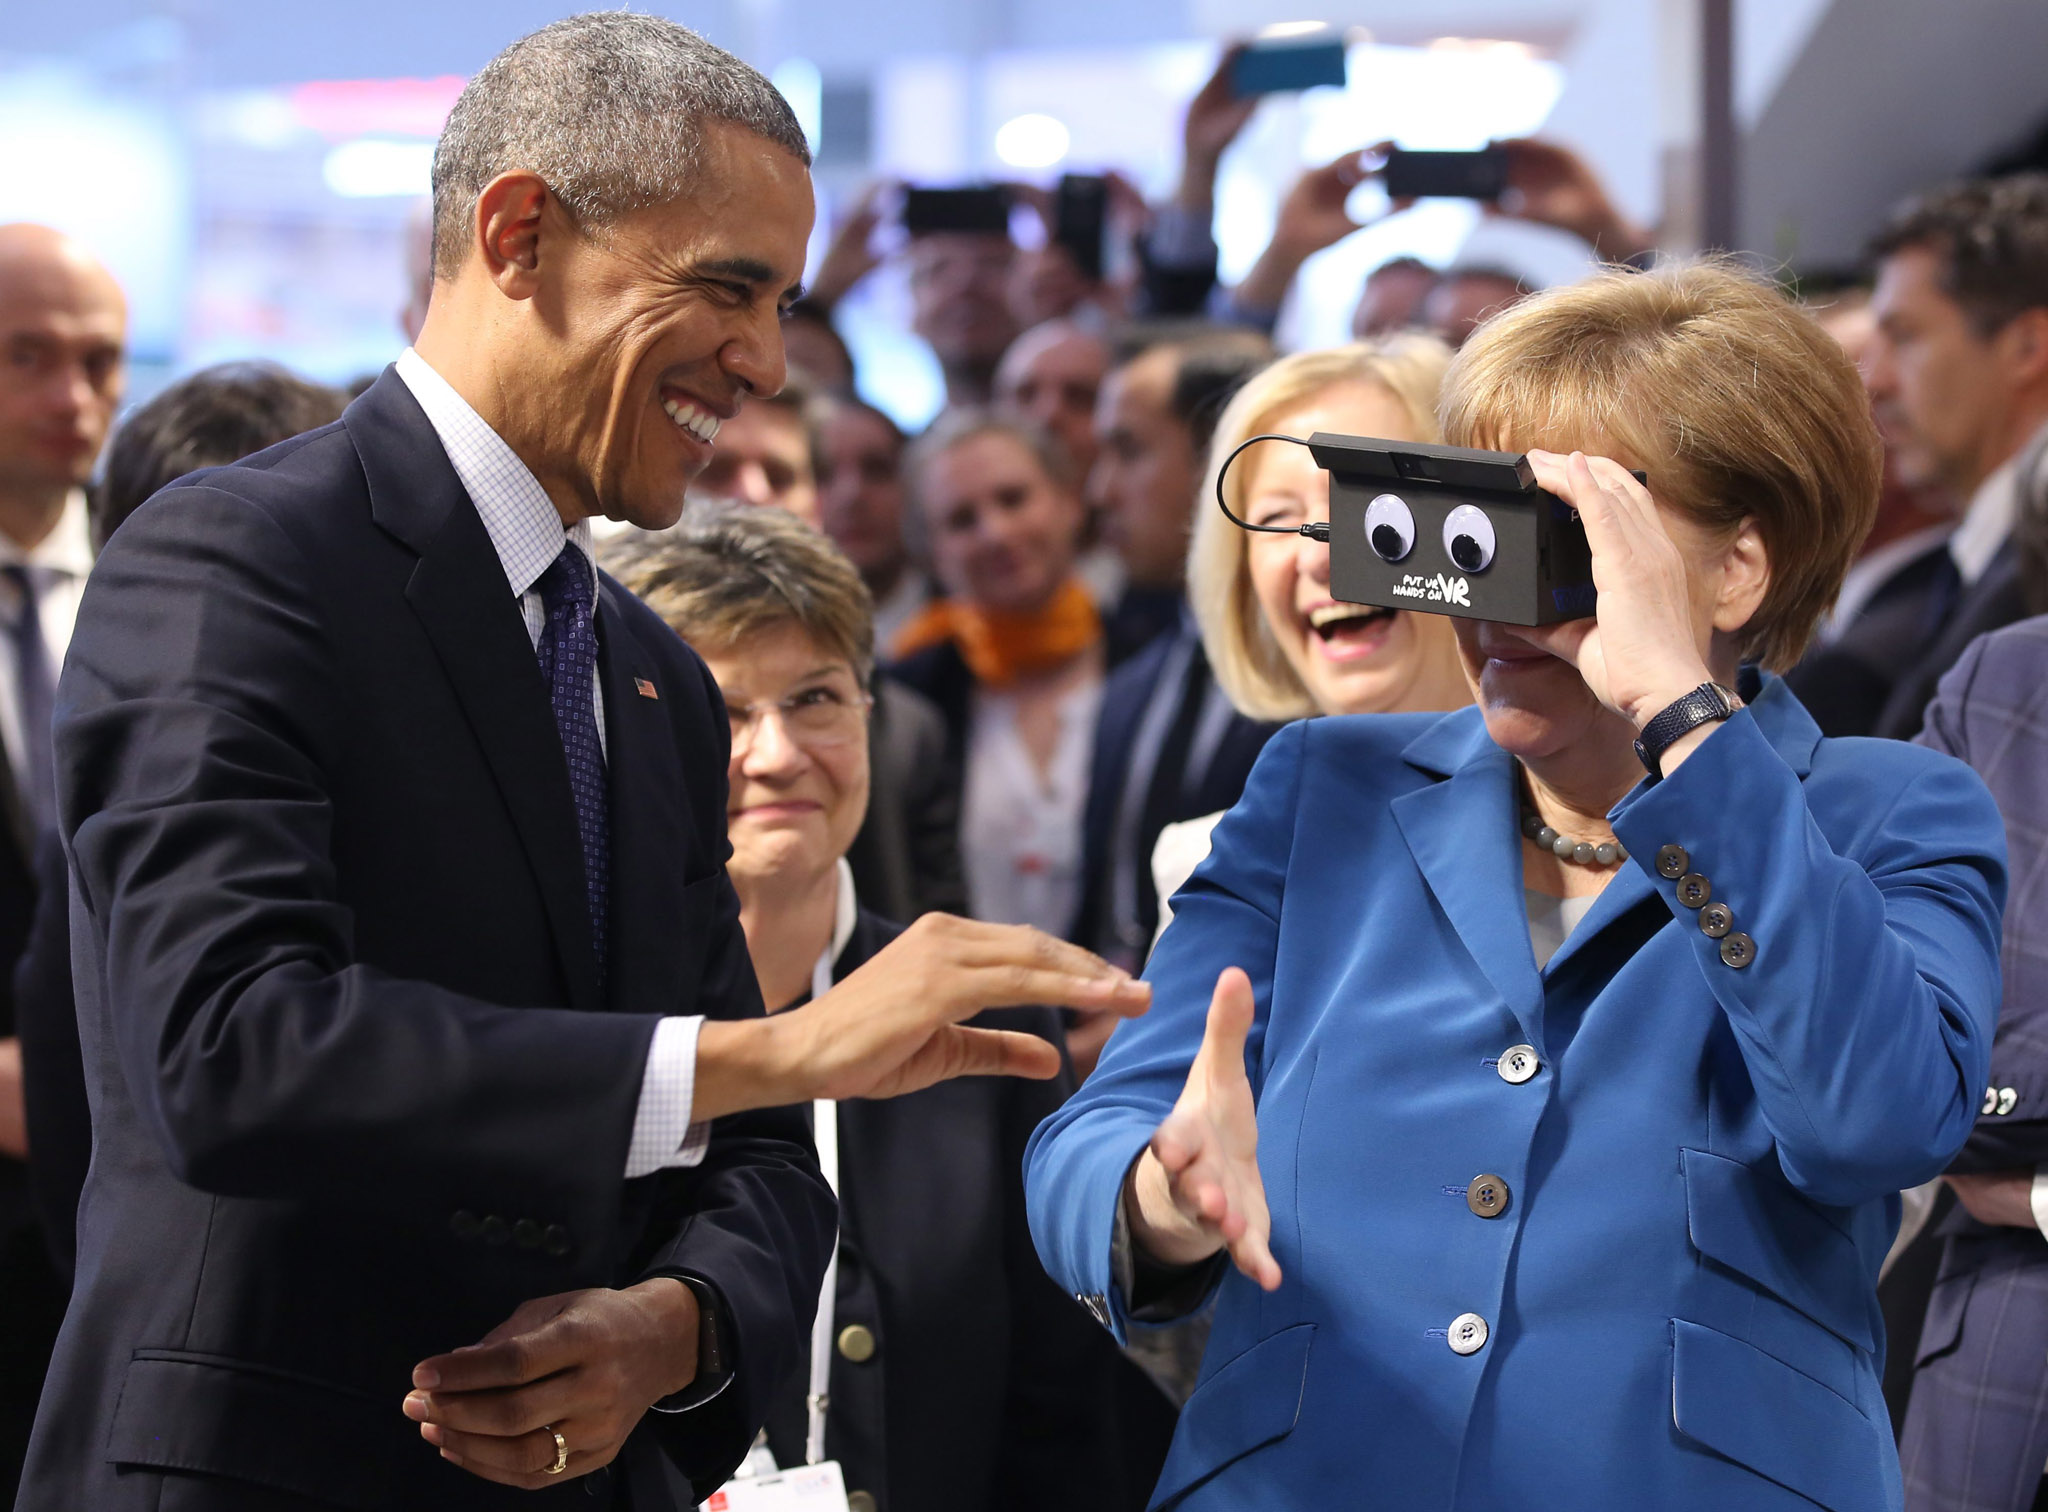 US President Barack Obama visits Germany...epa05276425 German†Chancellor Angela Merkel (R) tests a Virtual Reality (VR) goggle next to US†President Barack Obama (L) as they visit the booth of ifm electronic (automation engineering) at the Hannover Messe industrial technology trade fair in Hanover,†Germany, 25 April 2016. The USA is this year's partner country at the trade fair. The US President is on a two-day visit to Germany.  EPA/CHRITSTIAN†CHARISIUS